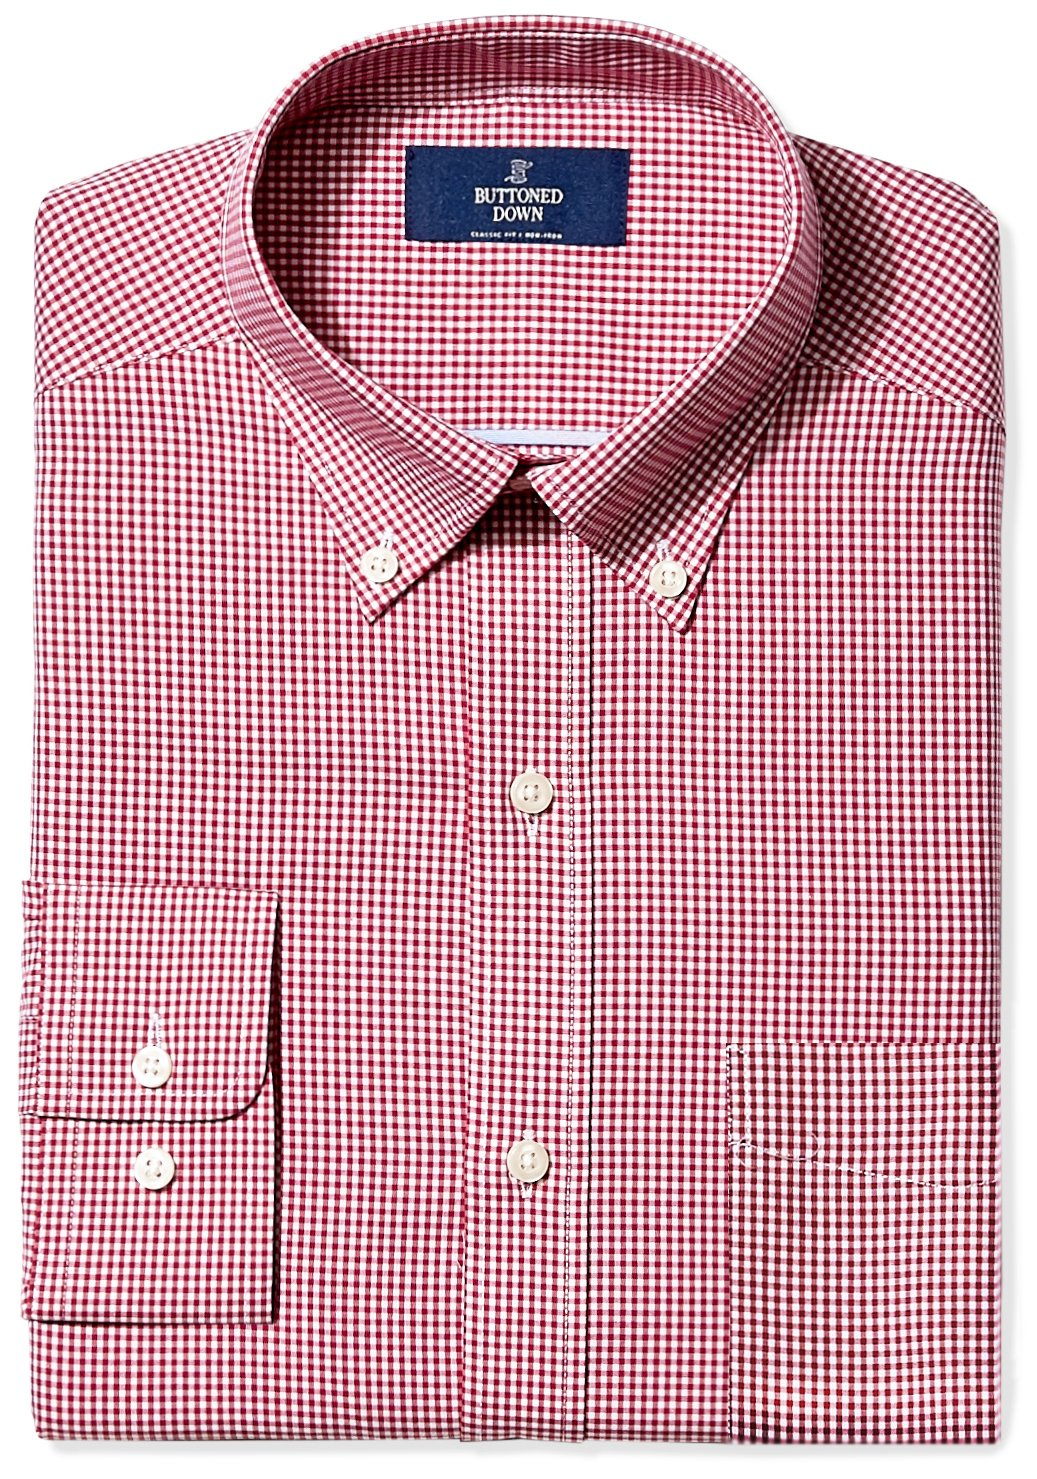 Buttoned Down Men's Classic Fit Button-Collar Non-Iron Dress Shirt, Burgundy Gingham, 18'' Neck 35'' Sleeve (Big and Tall)